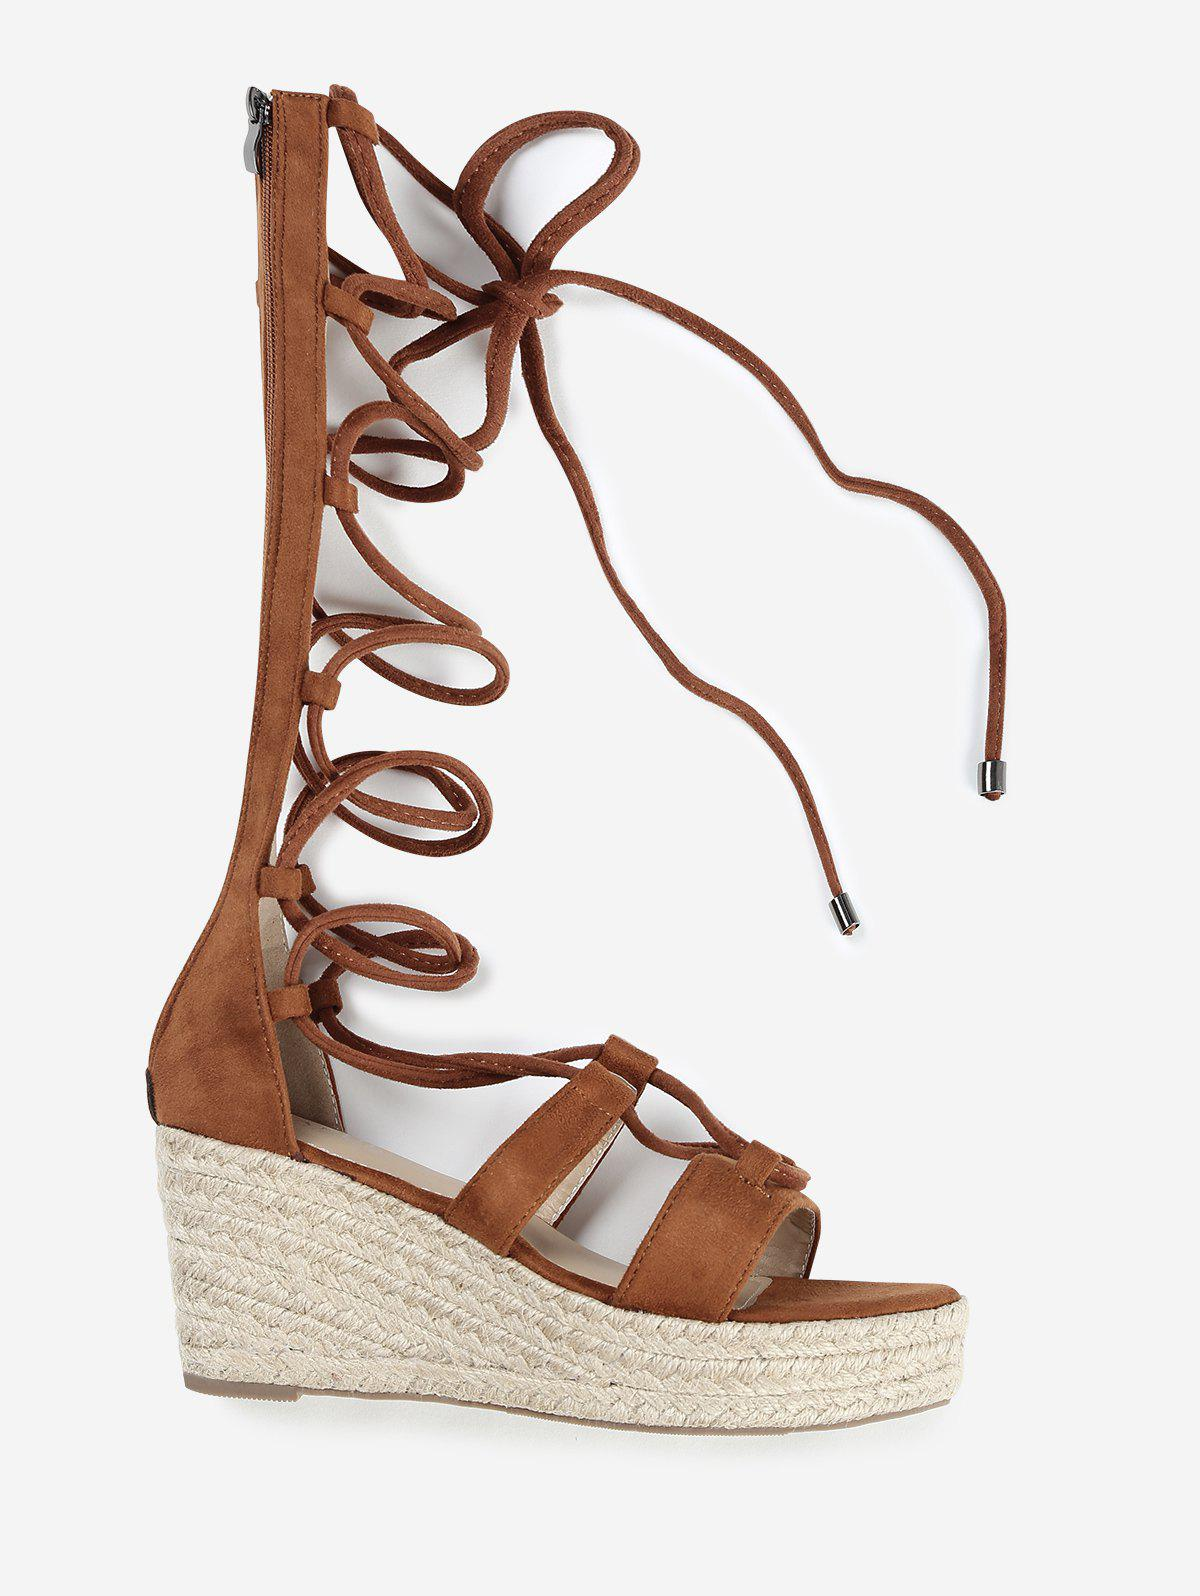 ZAFUL Wedge Heel Strappy Gladiator Mid Calf Sandals - BROWN 40